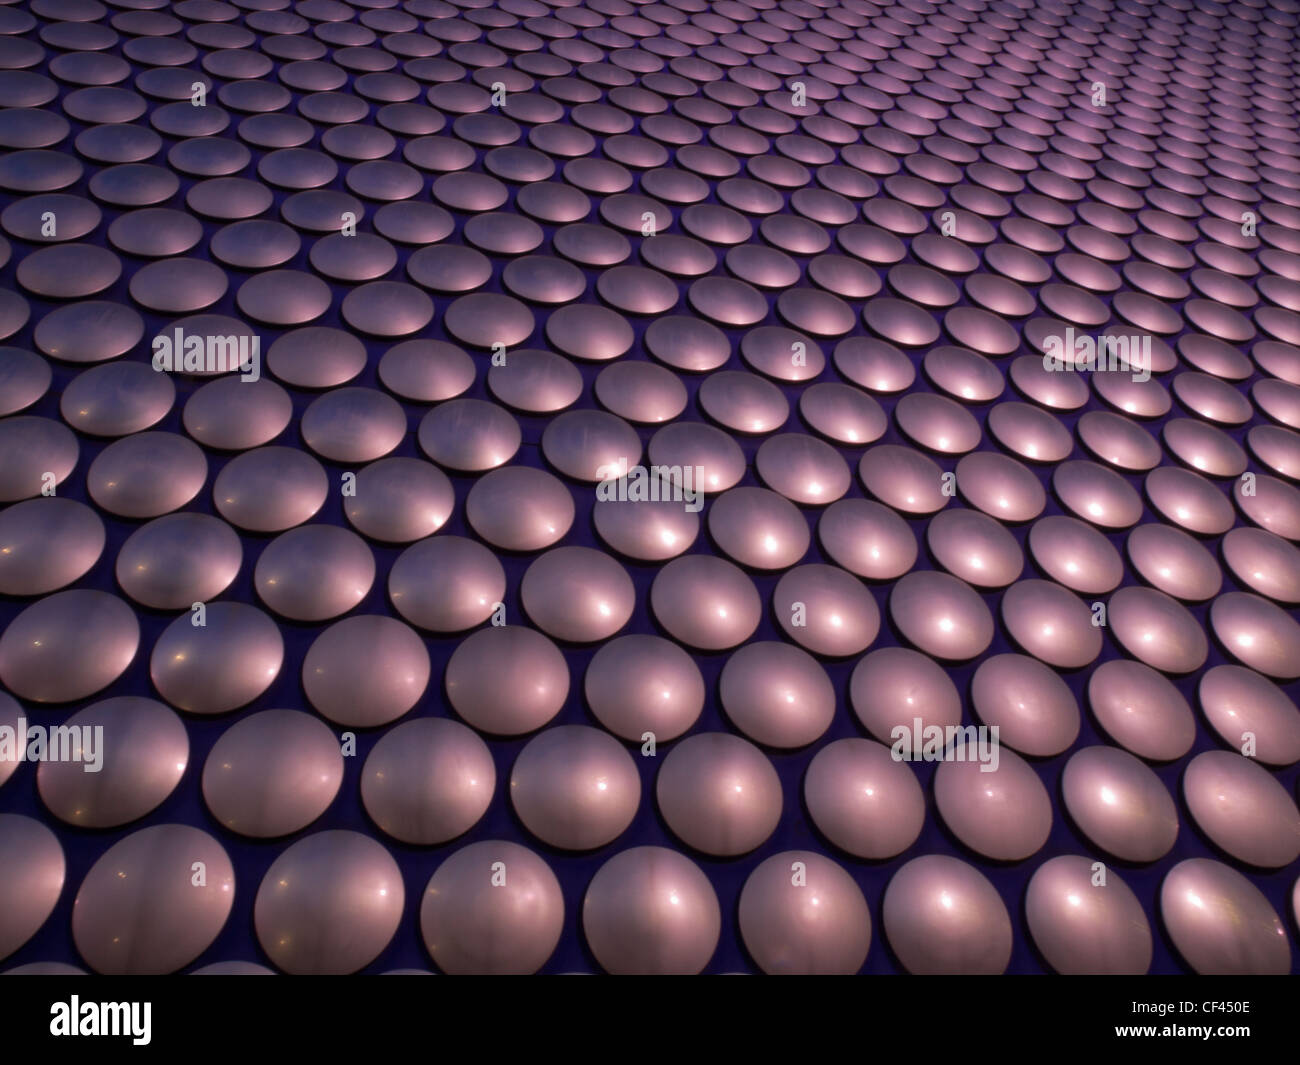 Birmingham city center, Selfridge's. Stock Photo